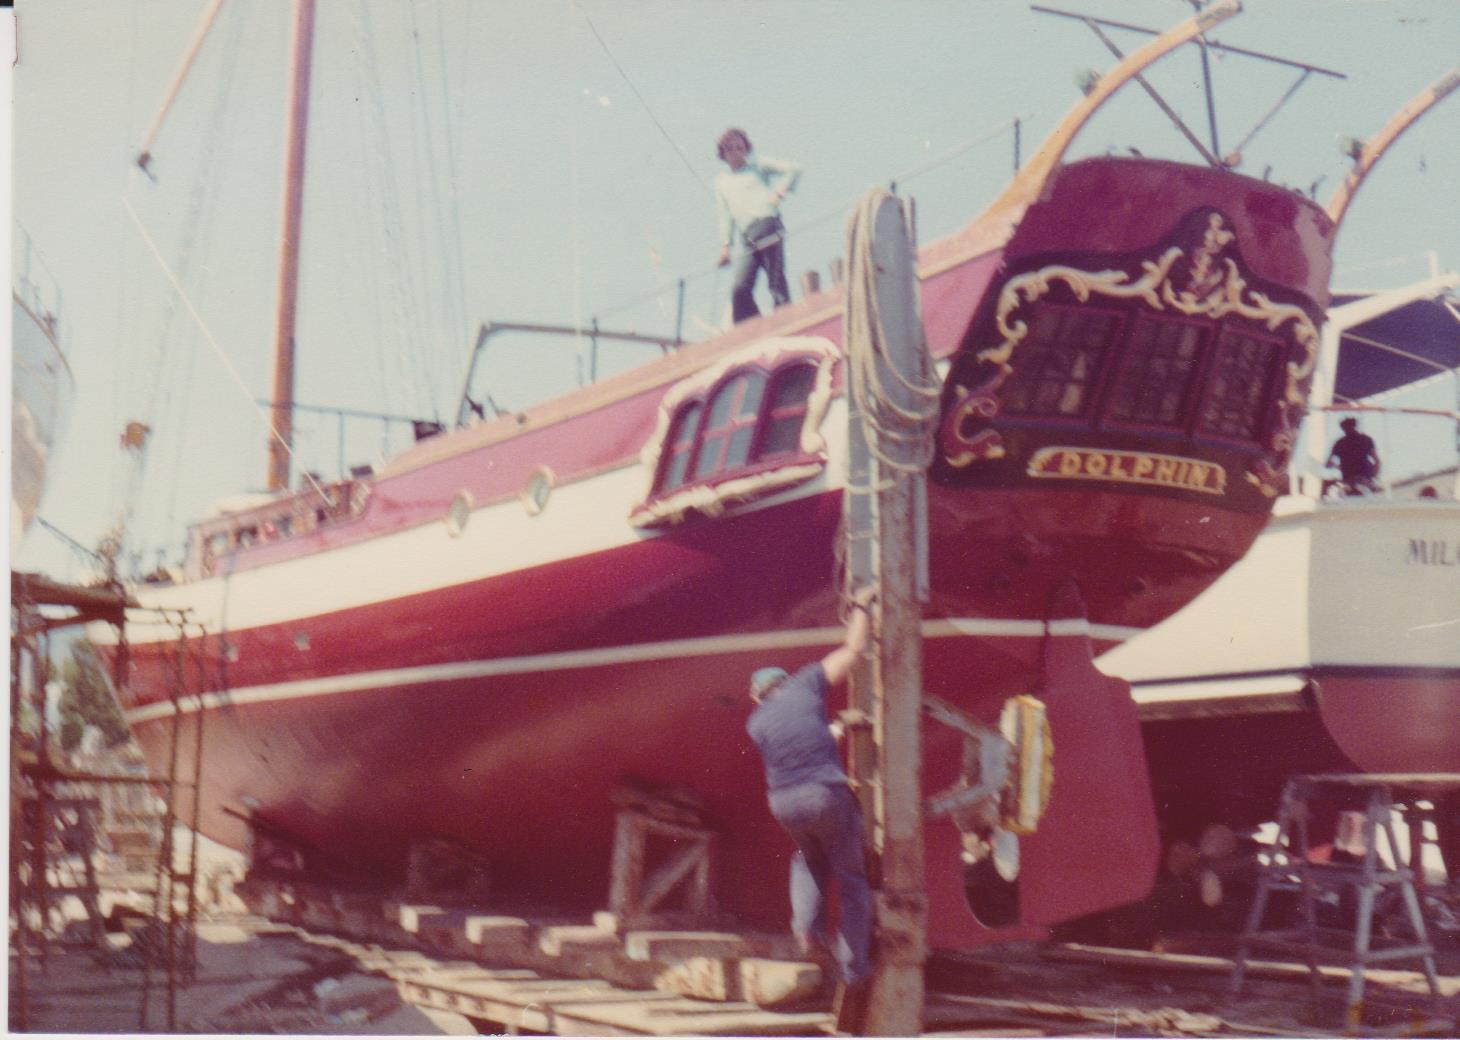 Classic ship on slipway with people